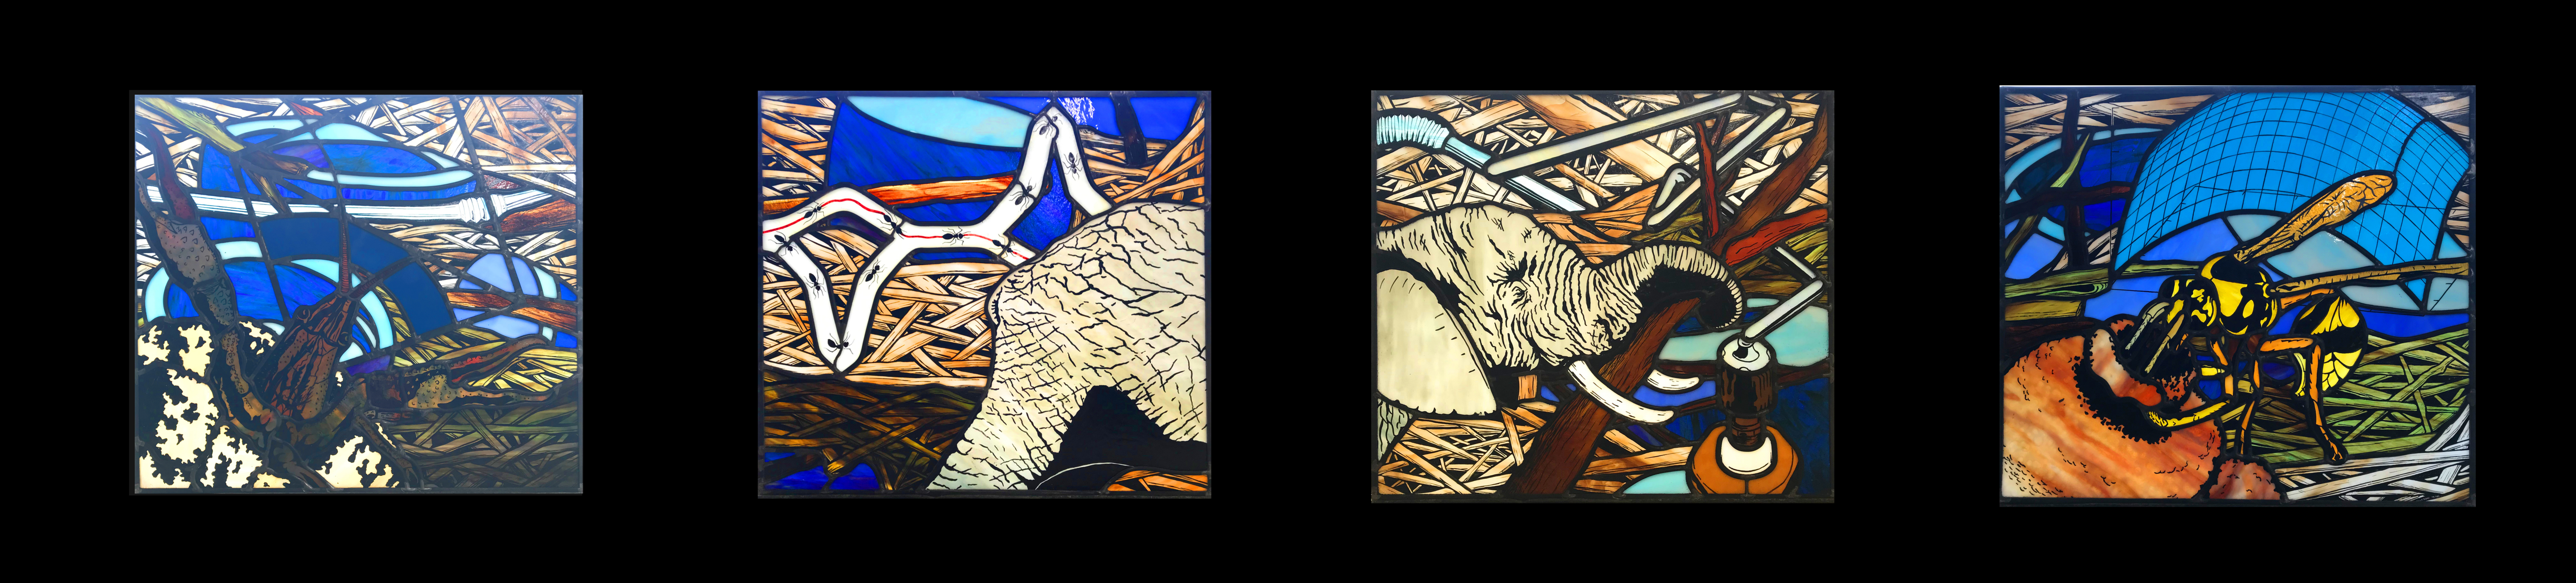 Up close image of stained-glass panels on dump truck